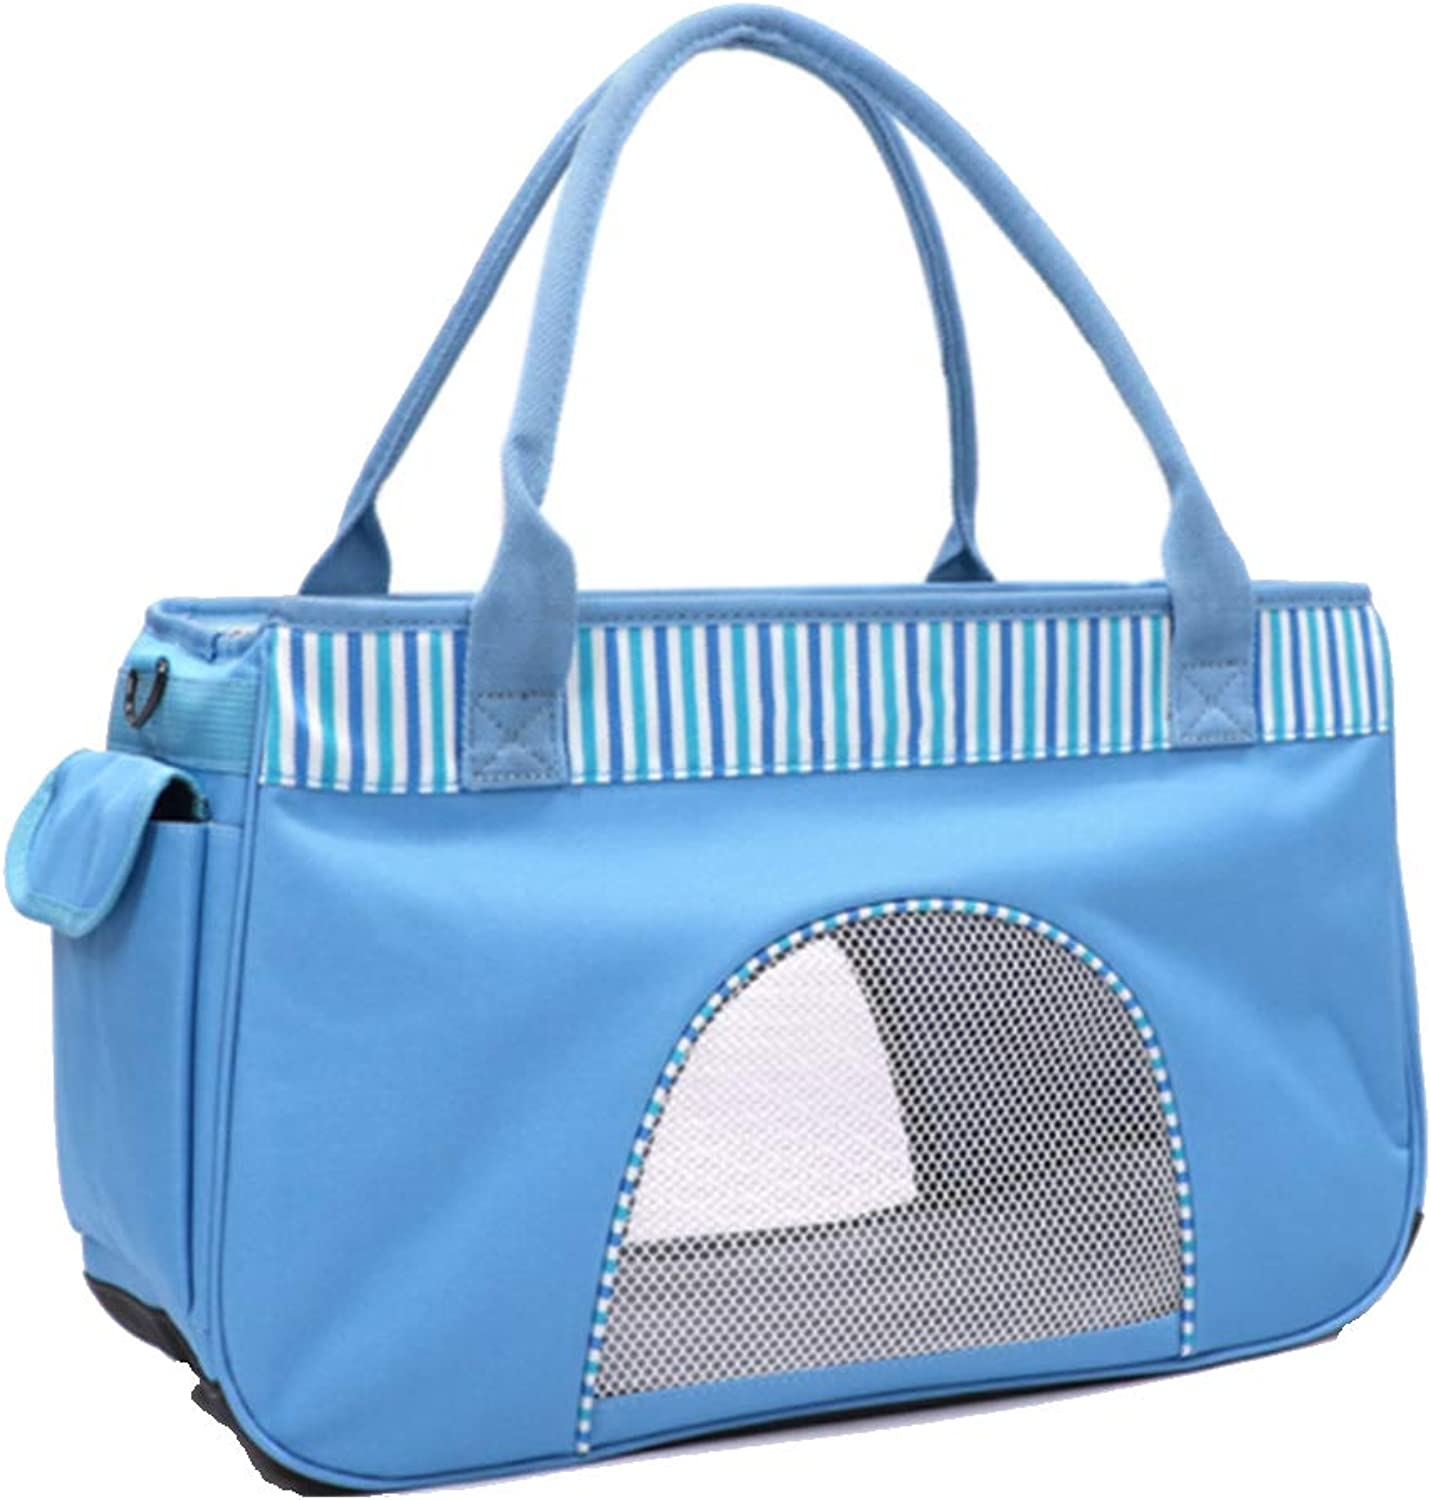 Pet Carrier Handbags Tote Bags for Dogs Cats Breathable Mesh Fashion Shoulder Bags,Lightweight Animals Bags